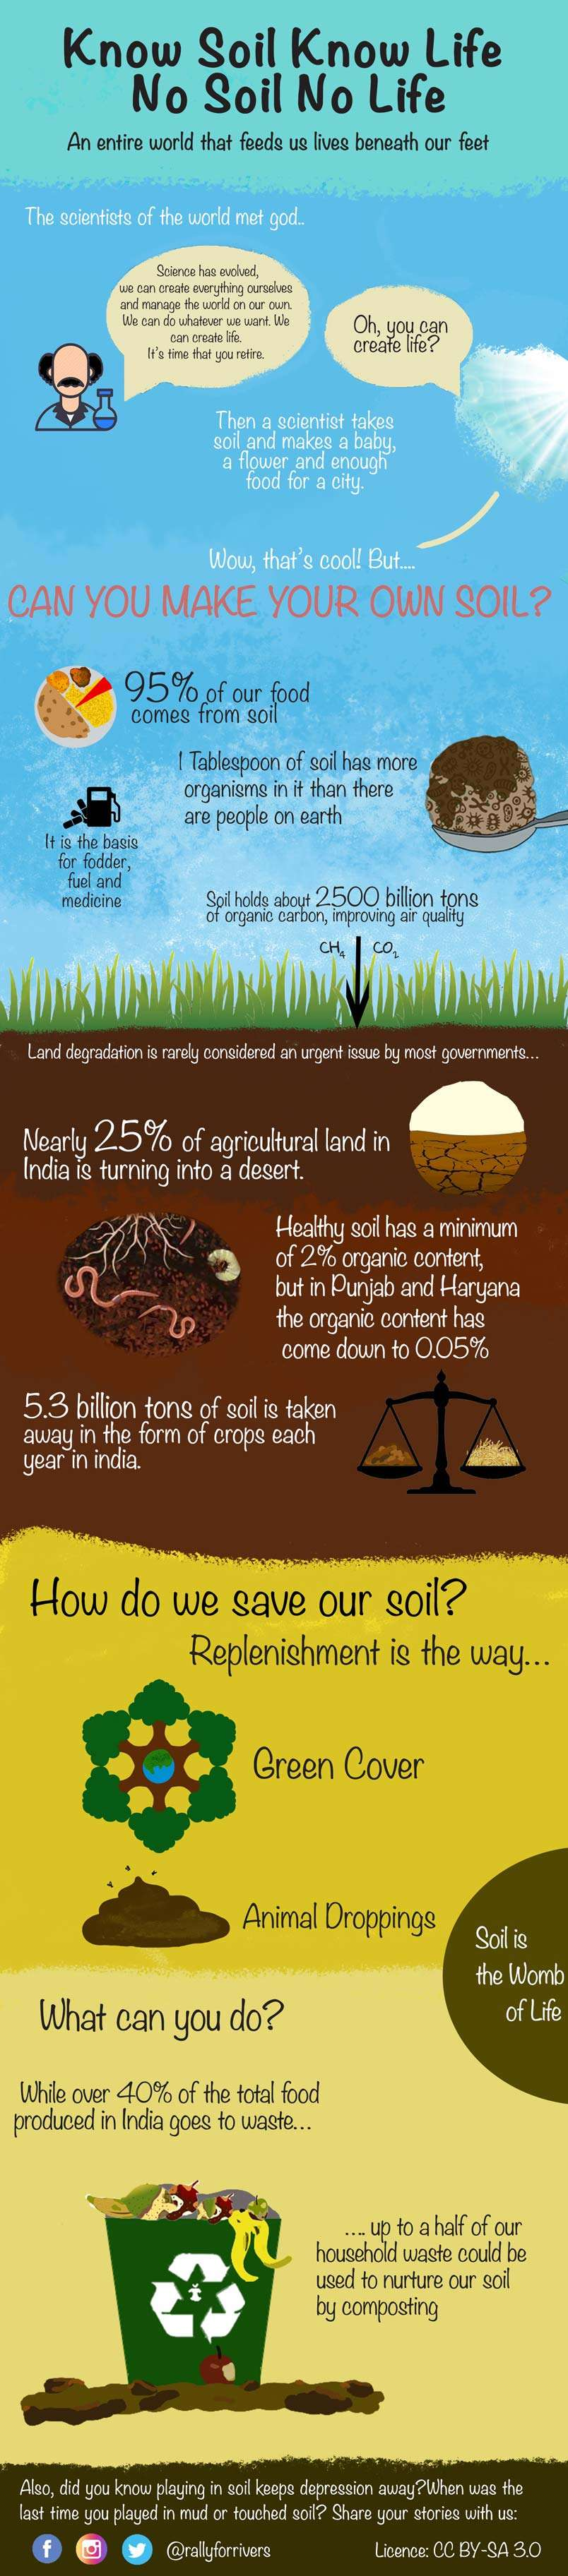 Know Soil Know Life infographic